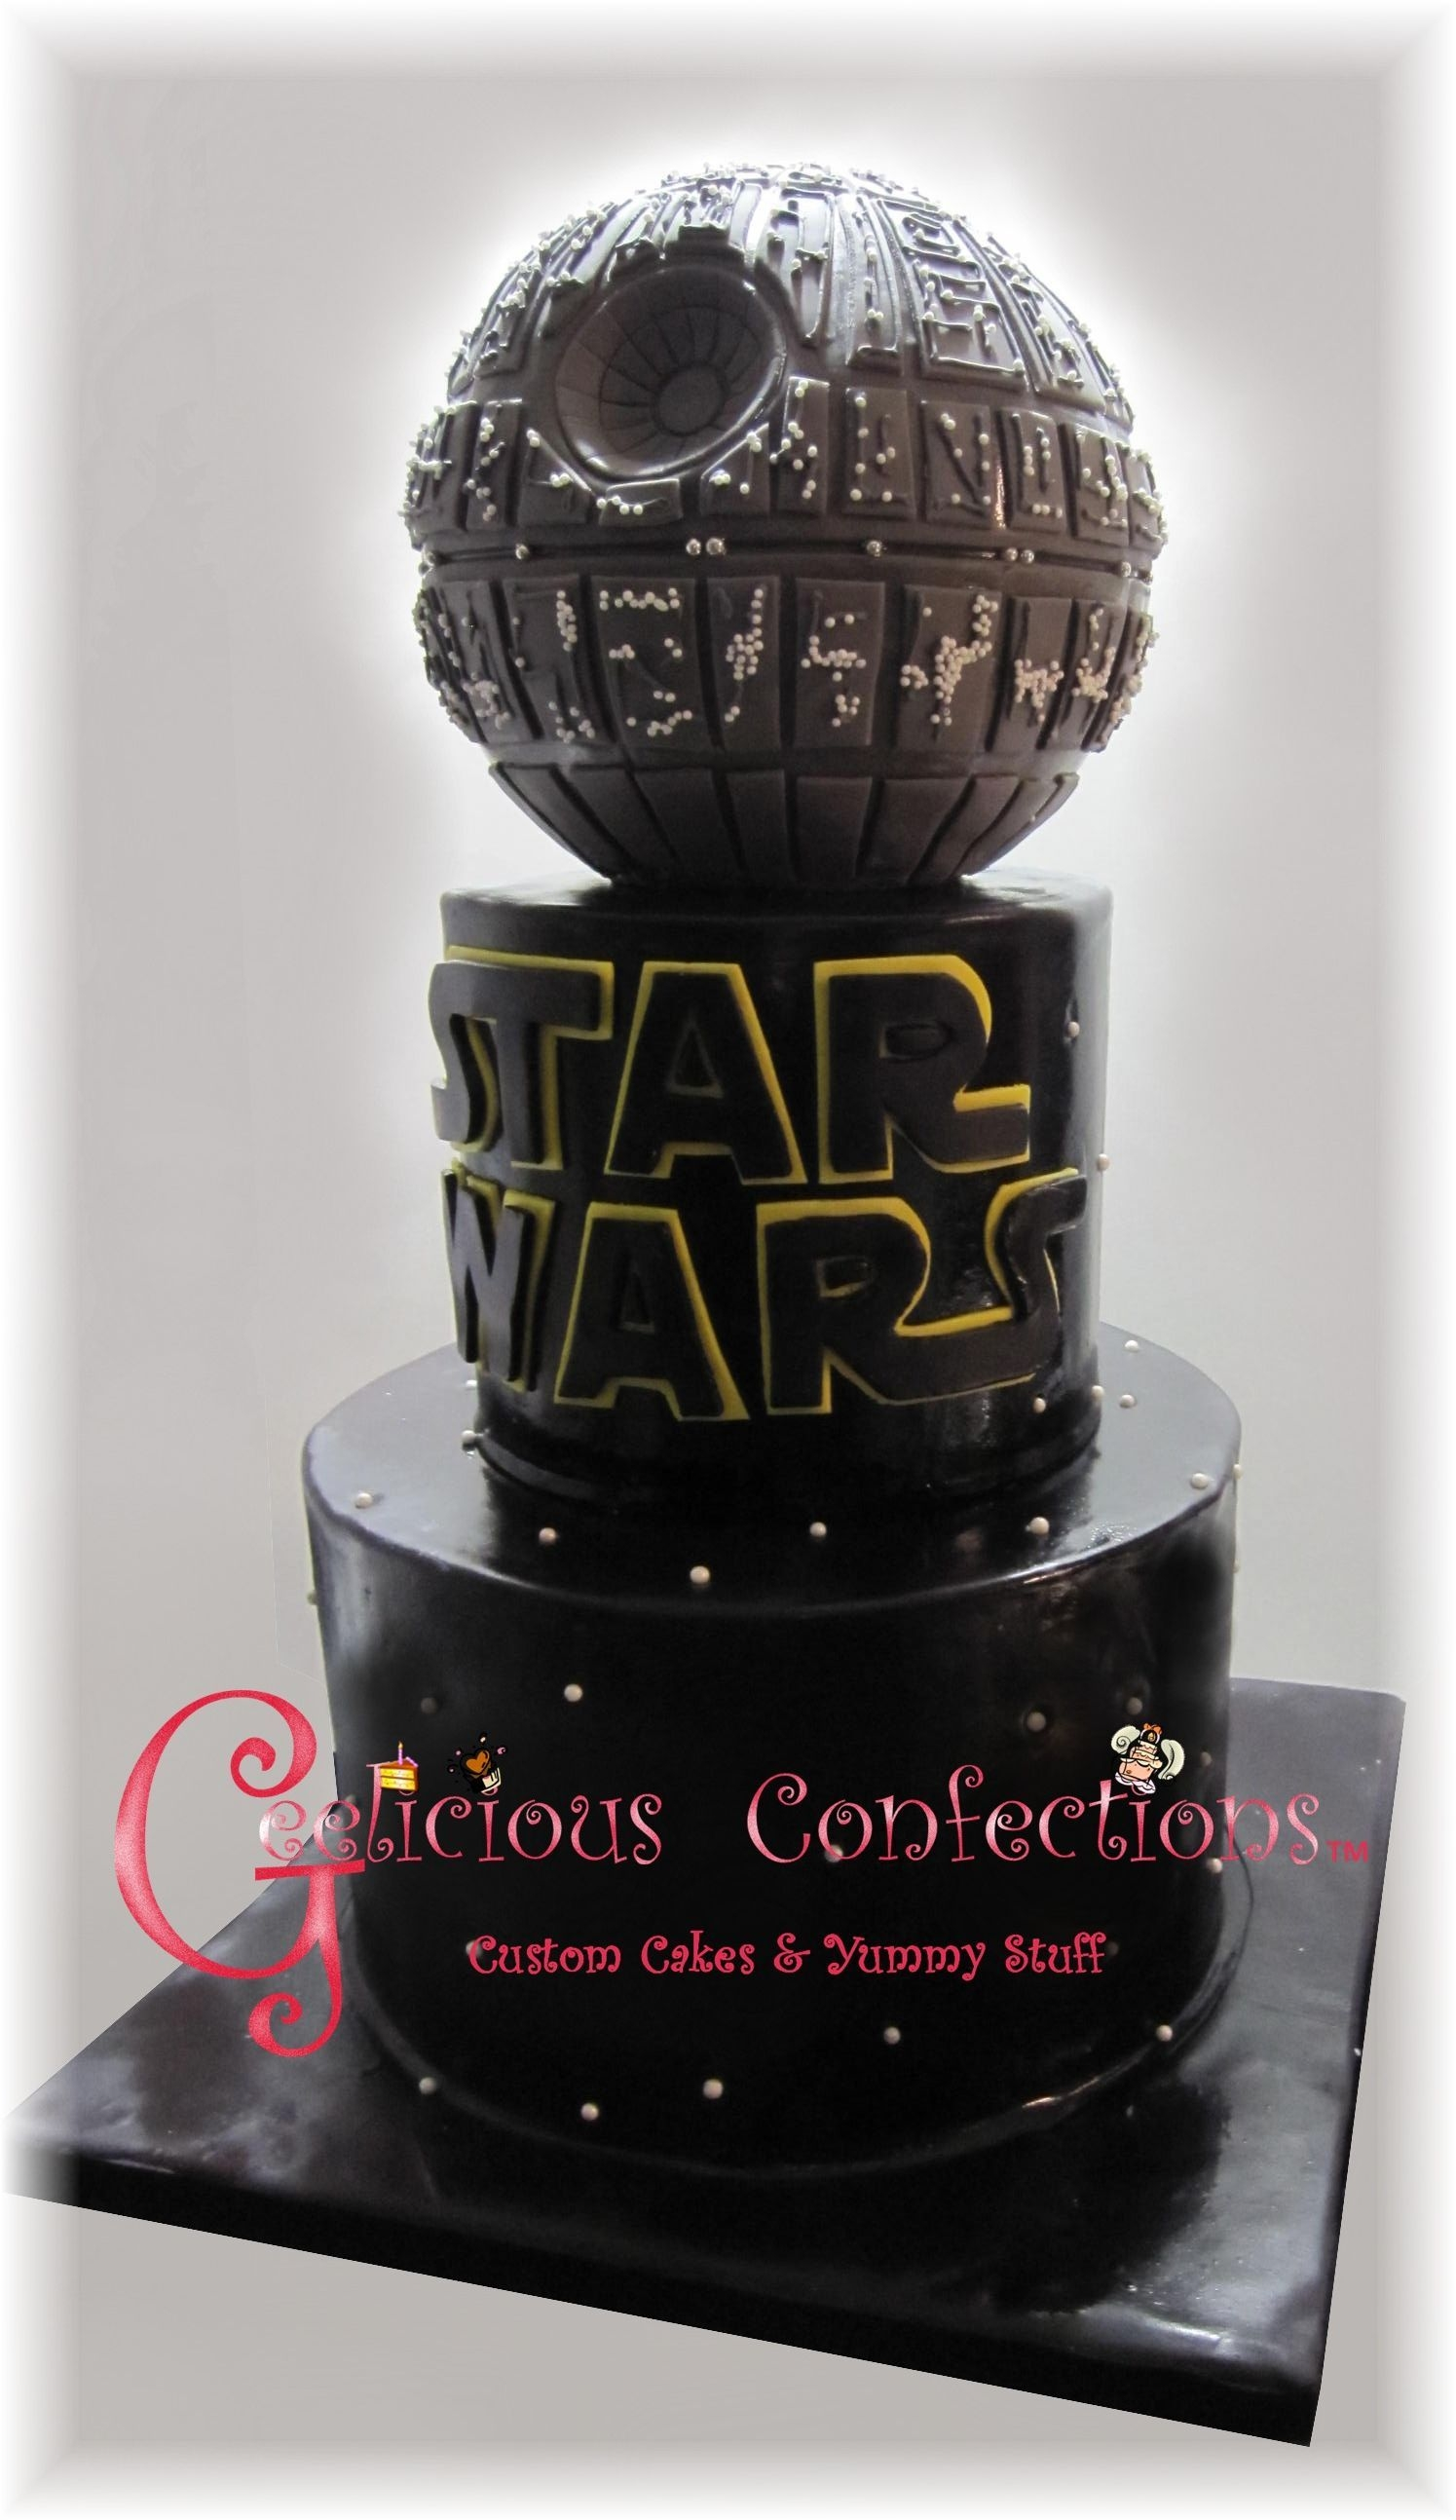 Not My Original Design But I Tried To Capture The Death Star As Best As I Could Since The Cake Was For Star Wars Fan To Celebrate His 40T Not my original design - but I tried to capture the Death Star as best as I could since the cake was for Star Wars fan. to celebrate his...